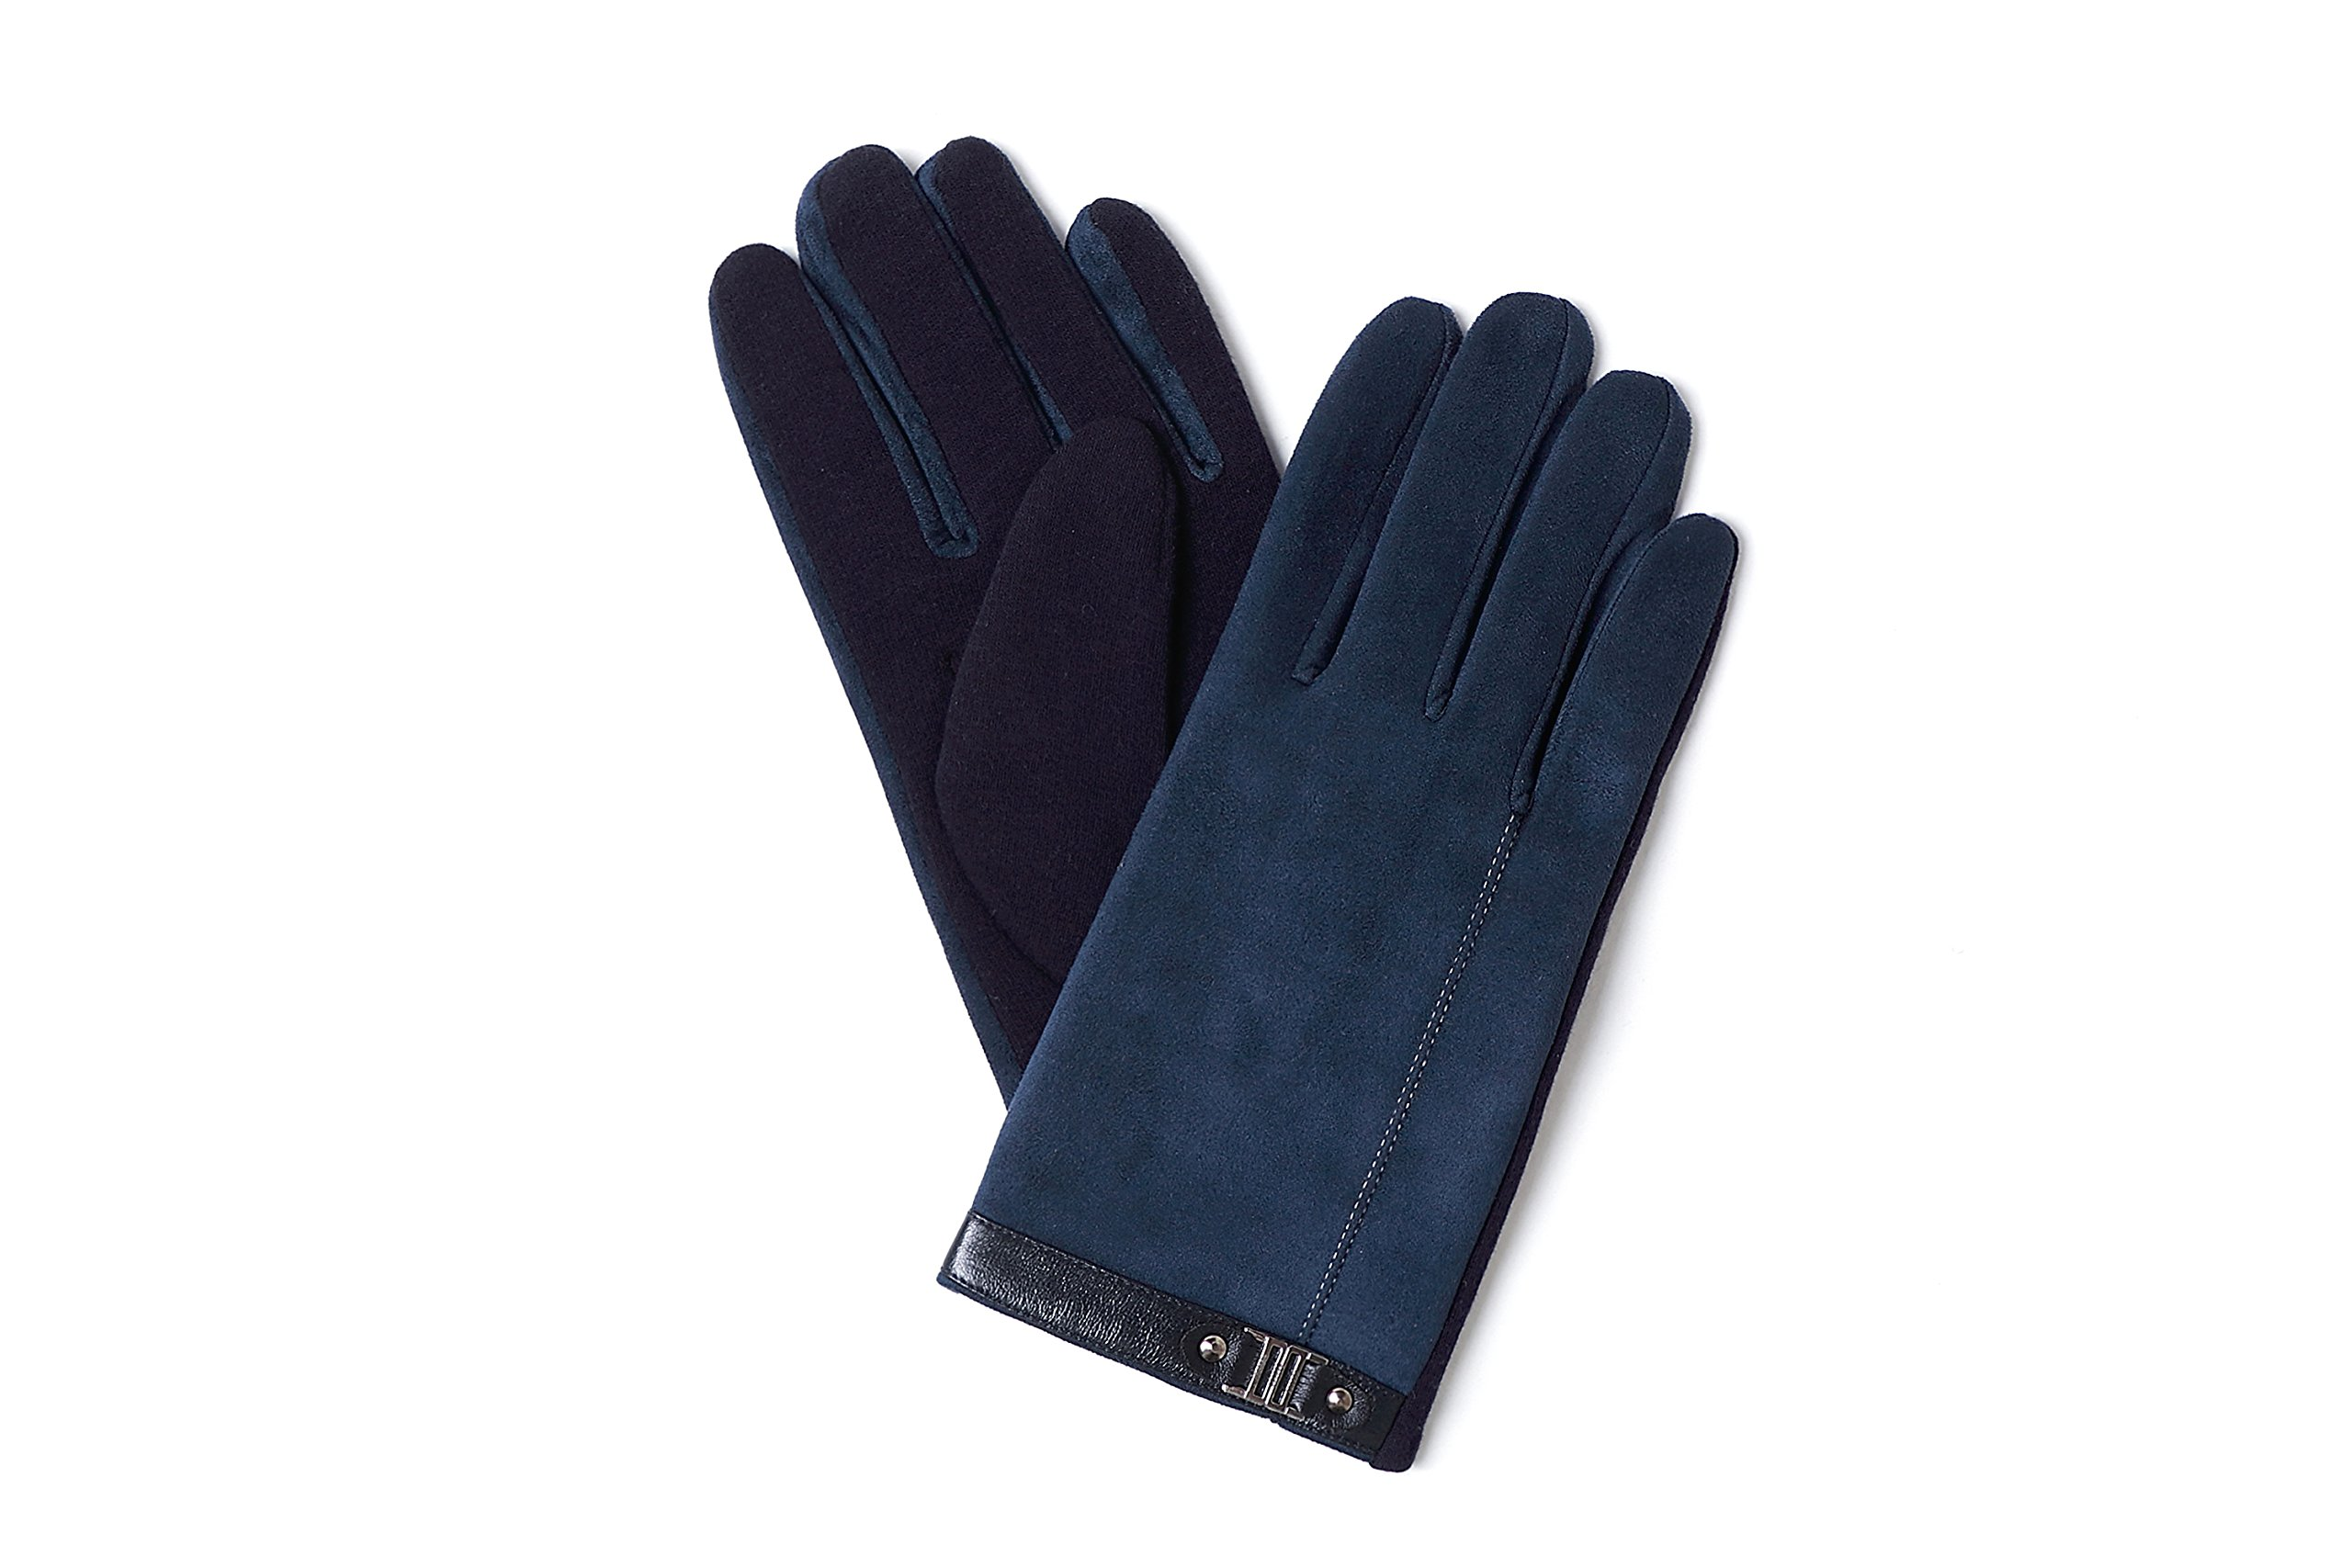 YISEVEN Men's Suede Chamois Leather Gloves Touchscreen Flat Design Plain Lined Luxury Soft Hand Warm Fur Heated Lining for Winter Spring Stylish Dress Work Xmas Gift and Motorcycle Driving, Blue M by YISEVEN (Image #2)